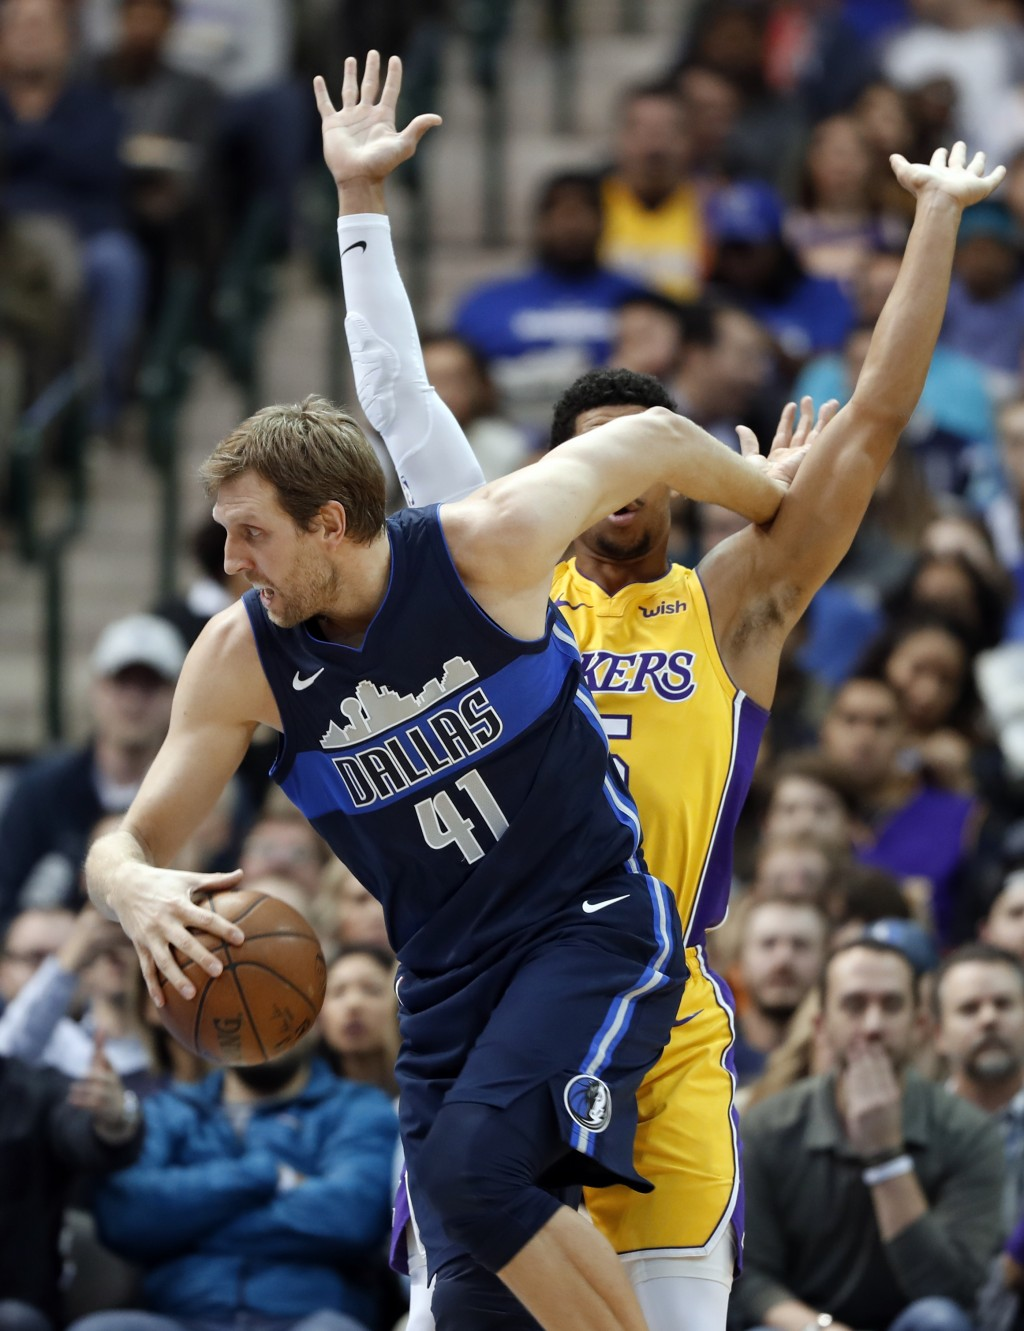 Dallas Mavericks forward Dirk Nowitzki (41) of Germany is fouled driving to the basket by Los Angeles Lakers' Josh Hart, rear, in the first half of an